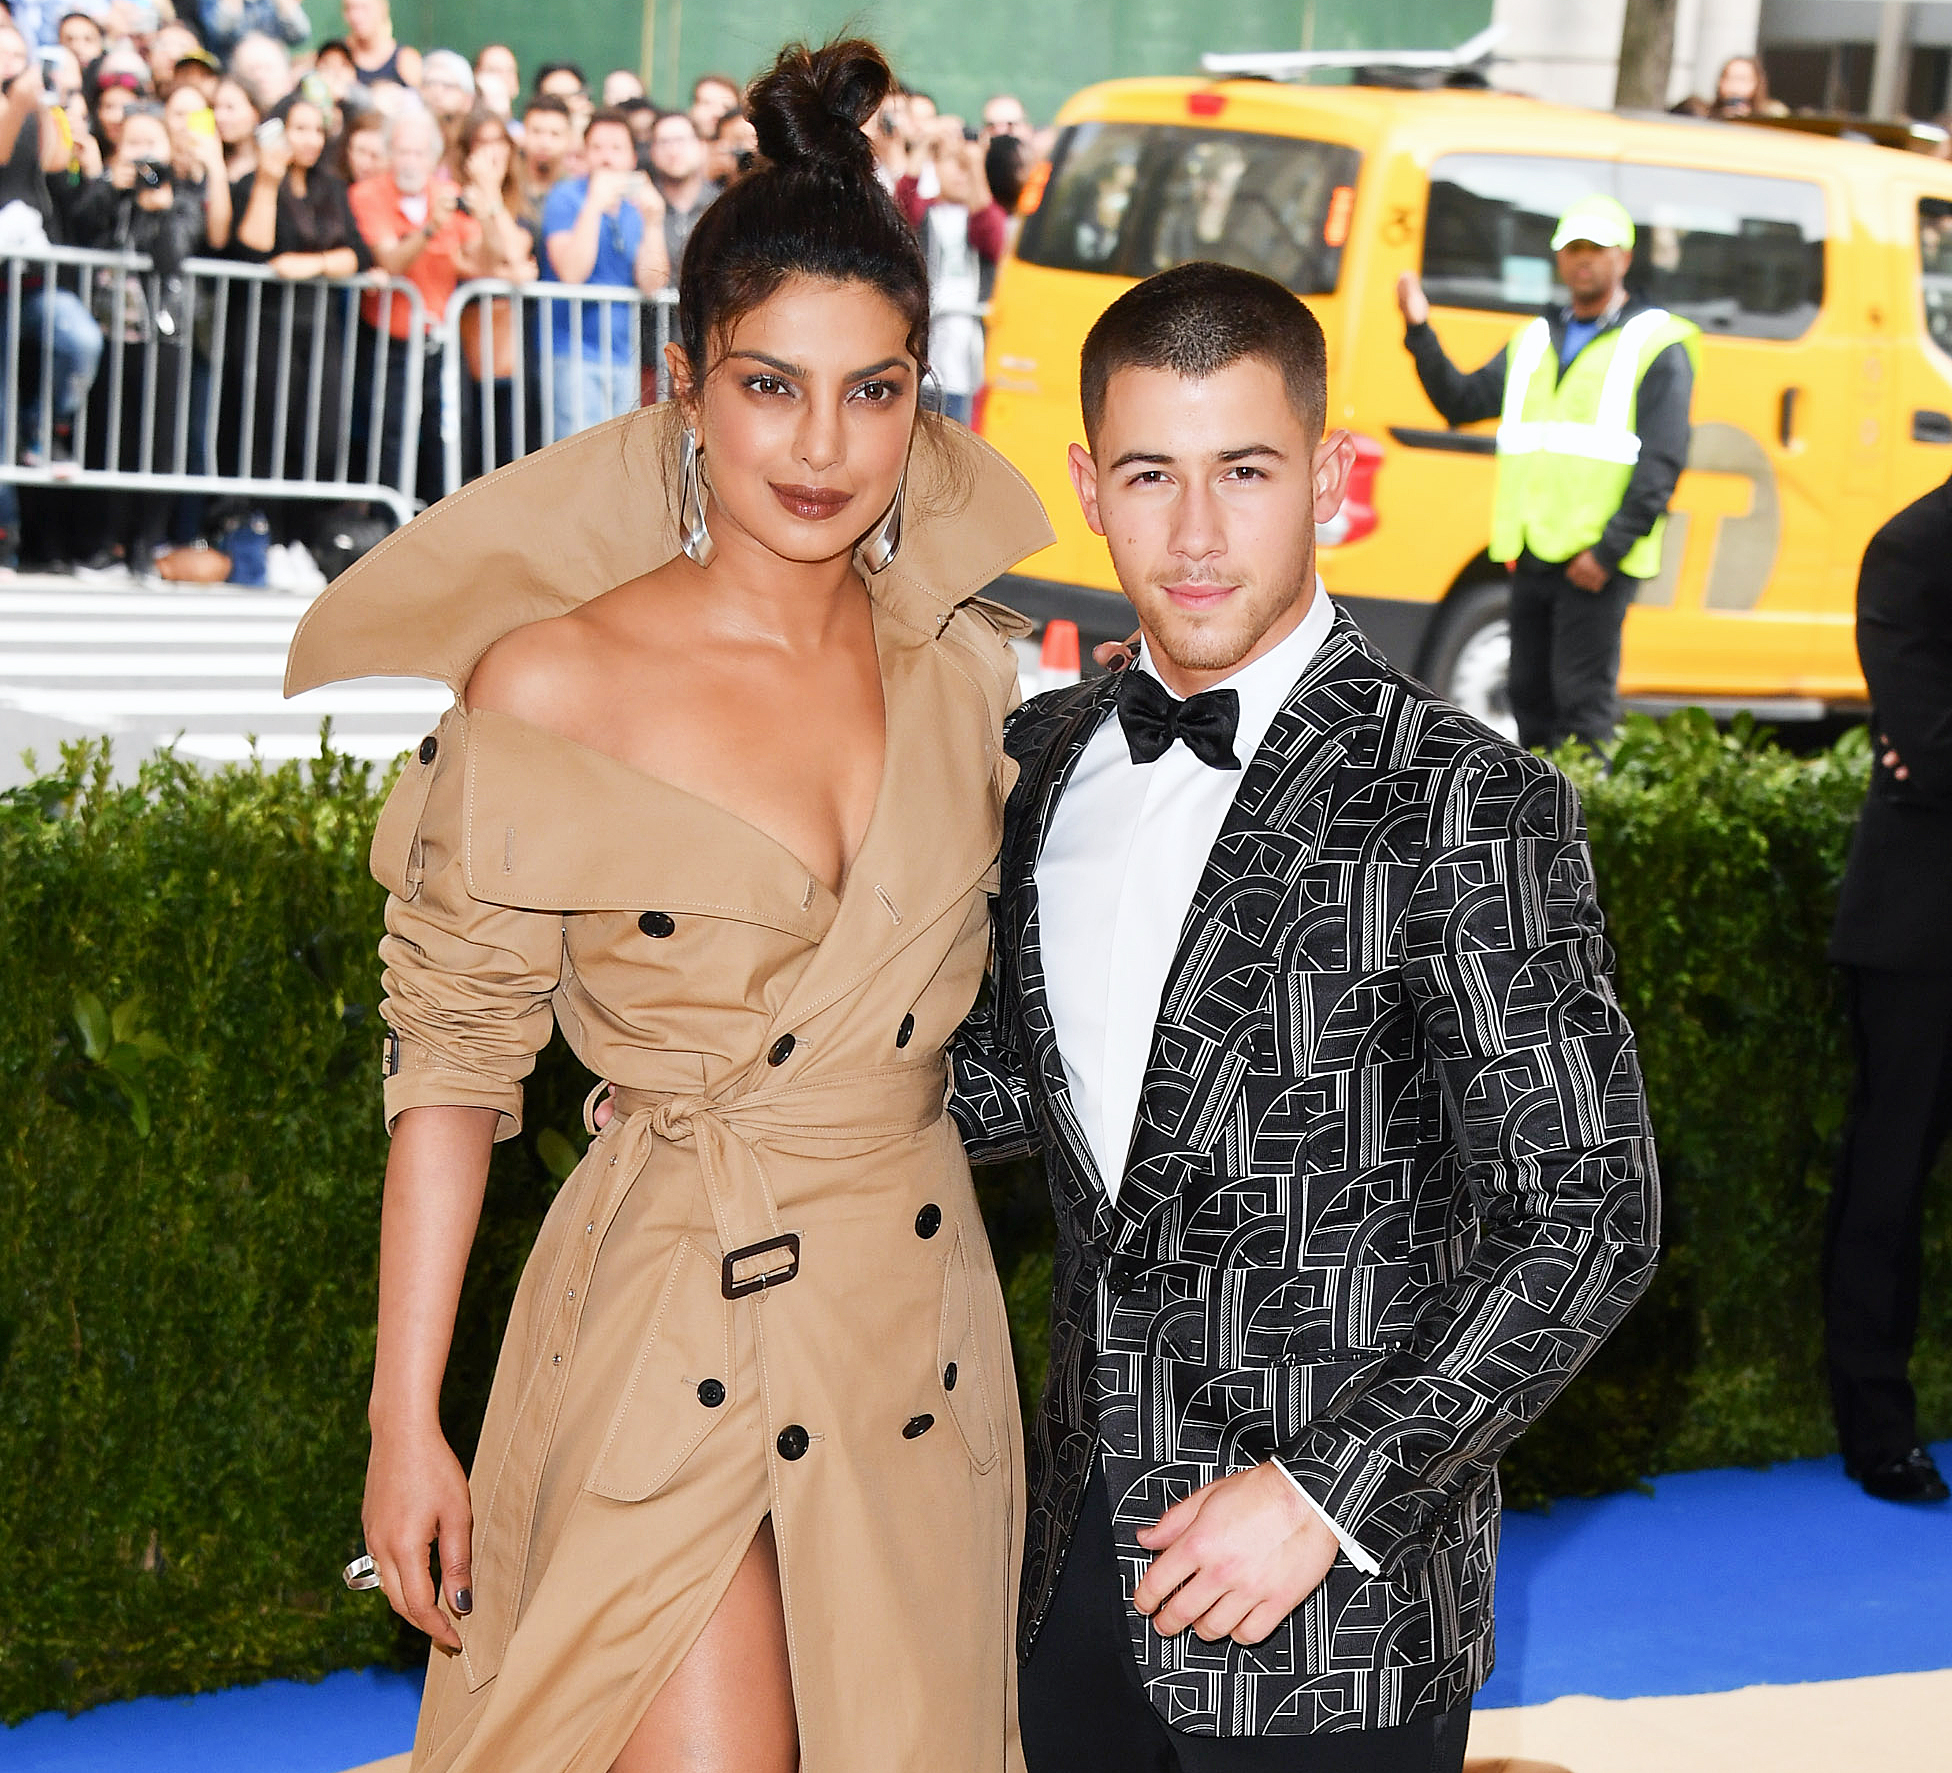 Are Nick Jonas and Priyanka Chopra dating?